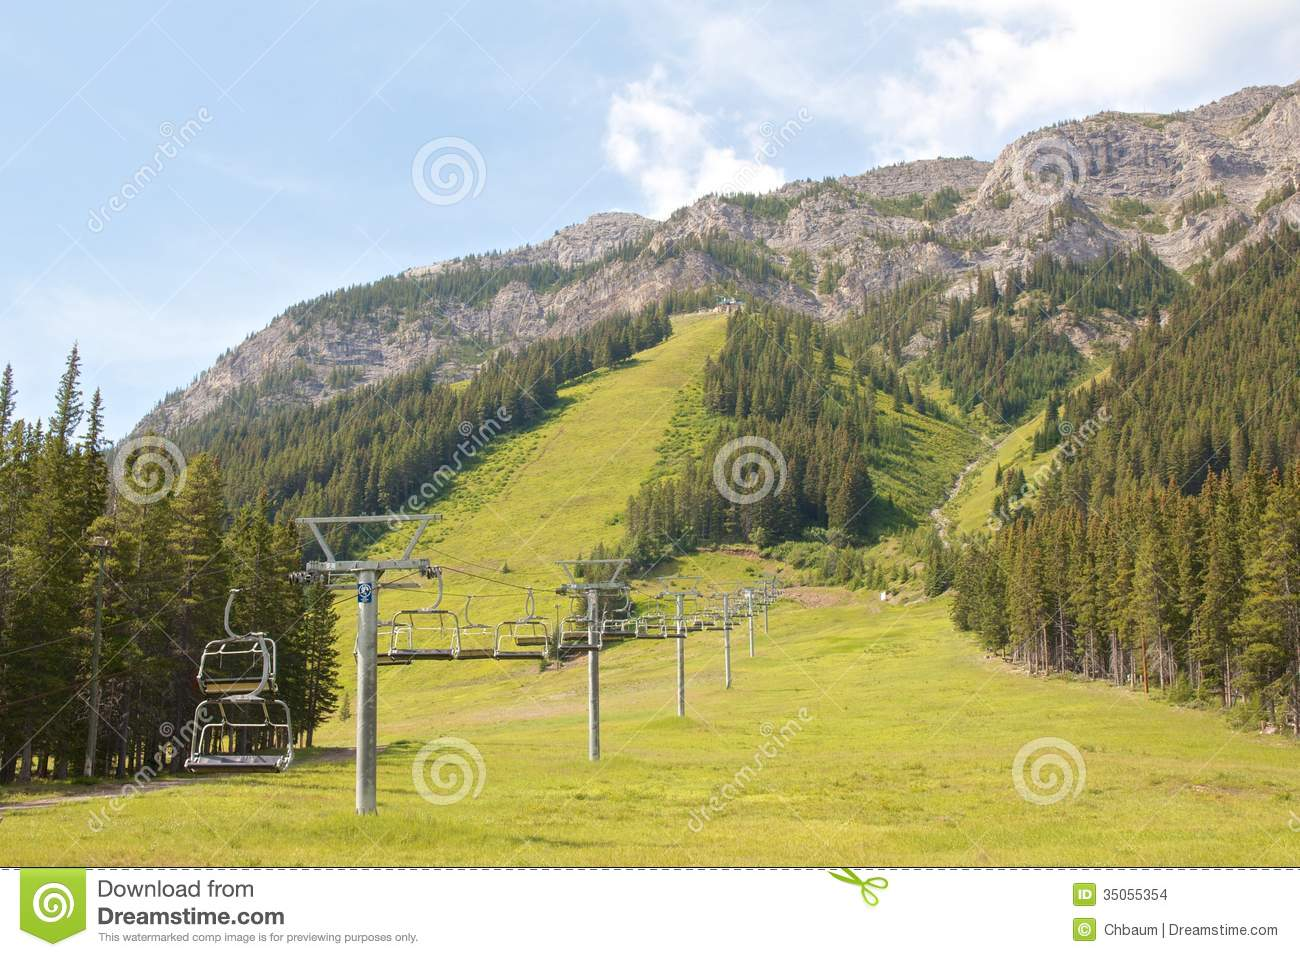 Ski lift in the Canadian Rocky Mountains in summer.